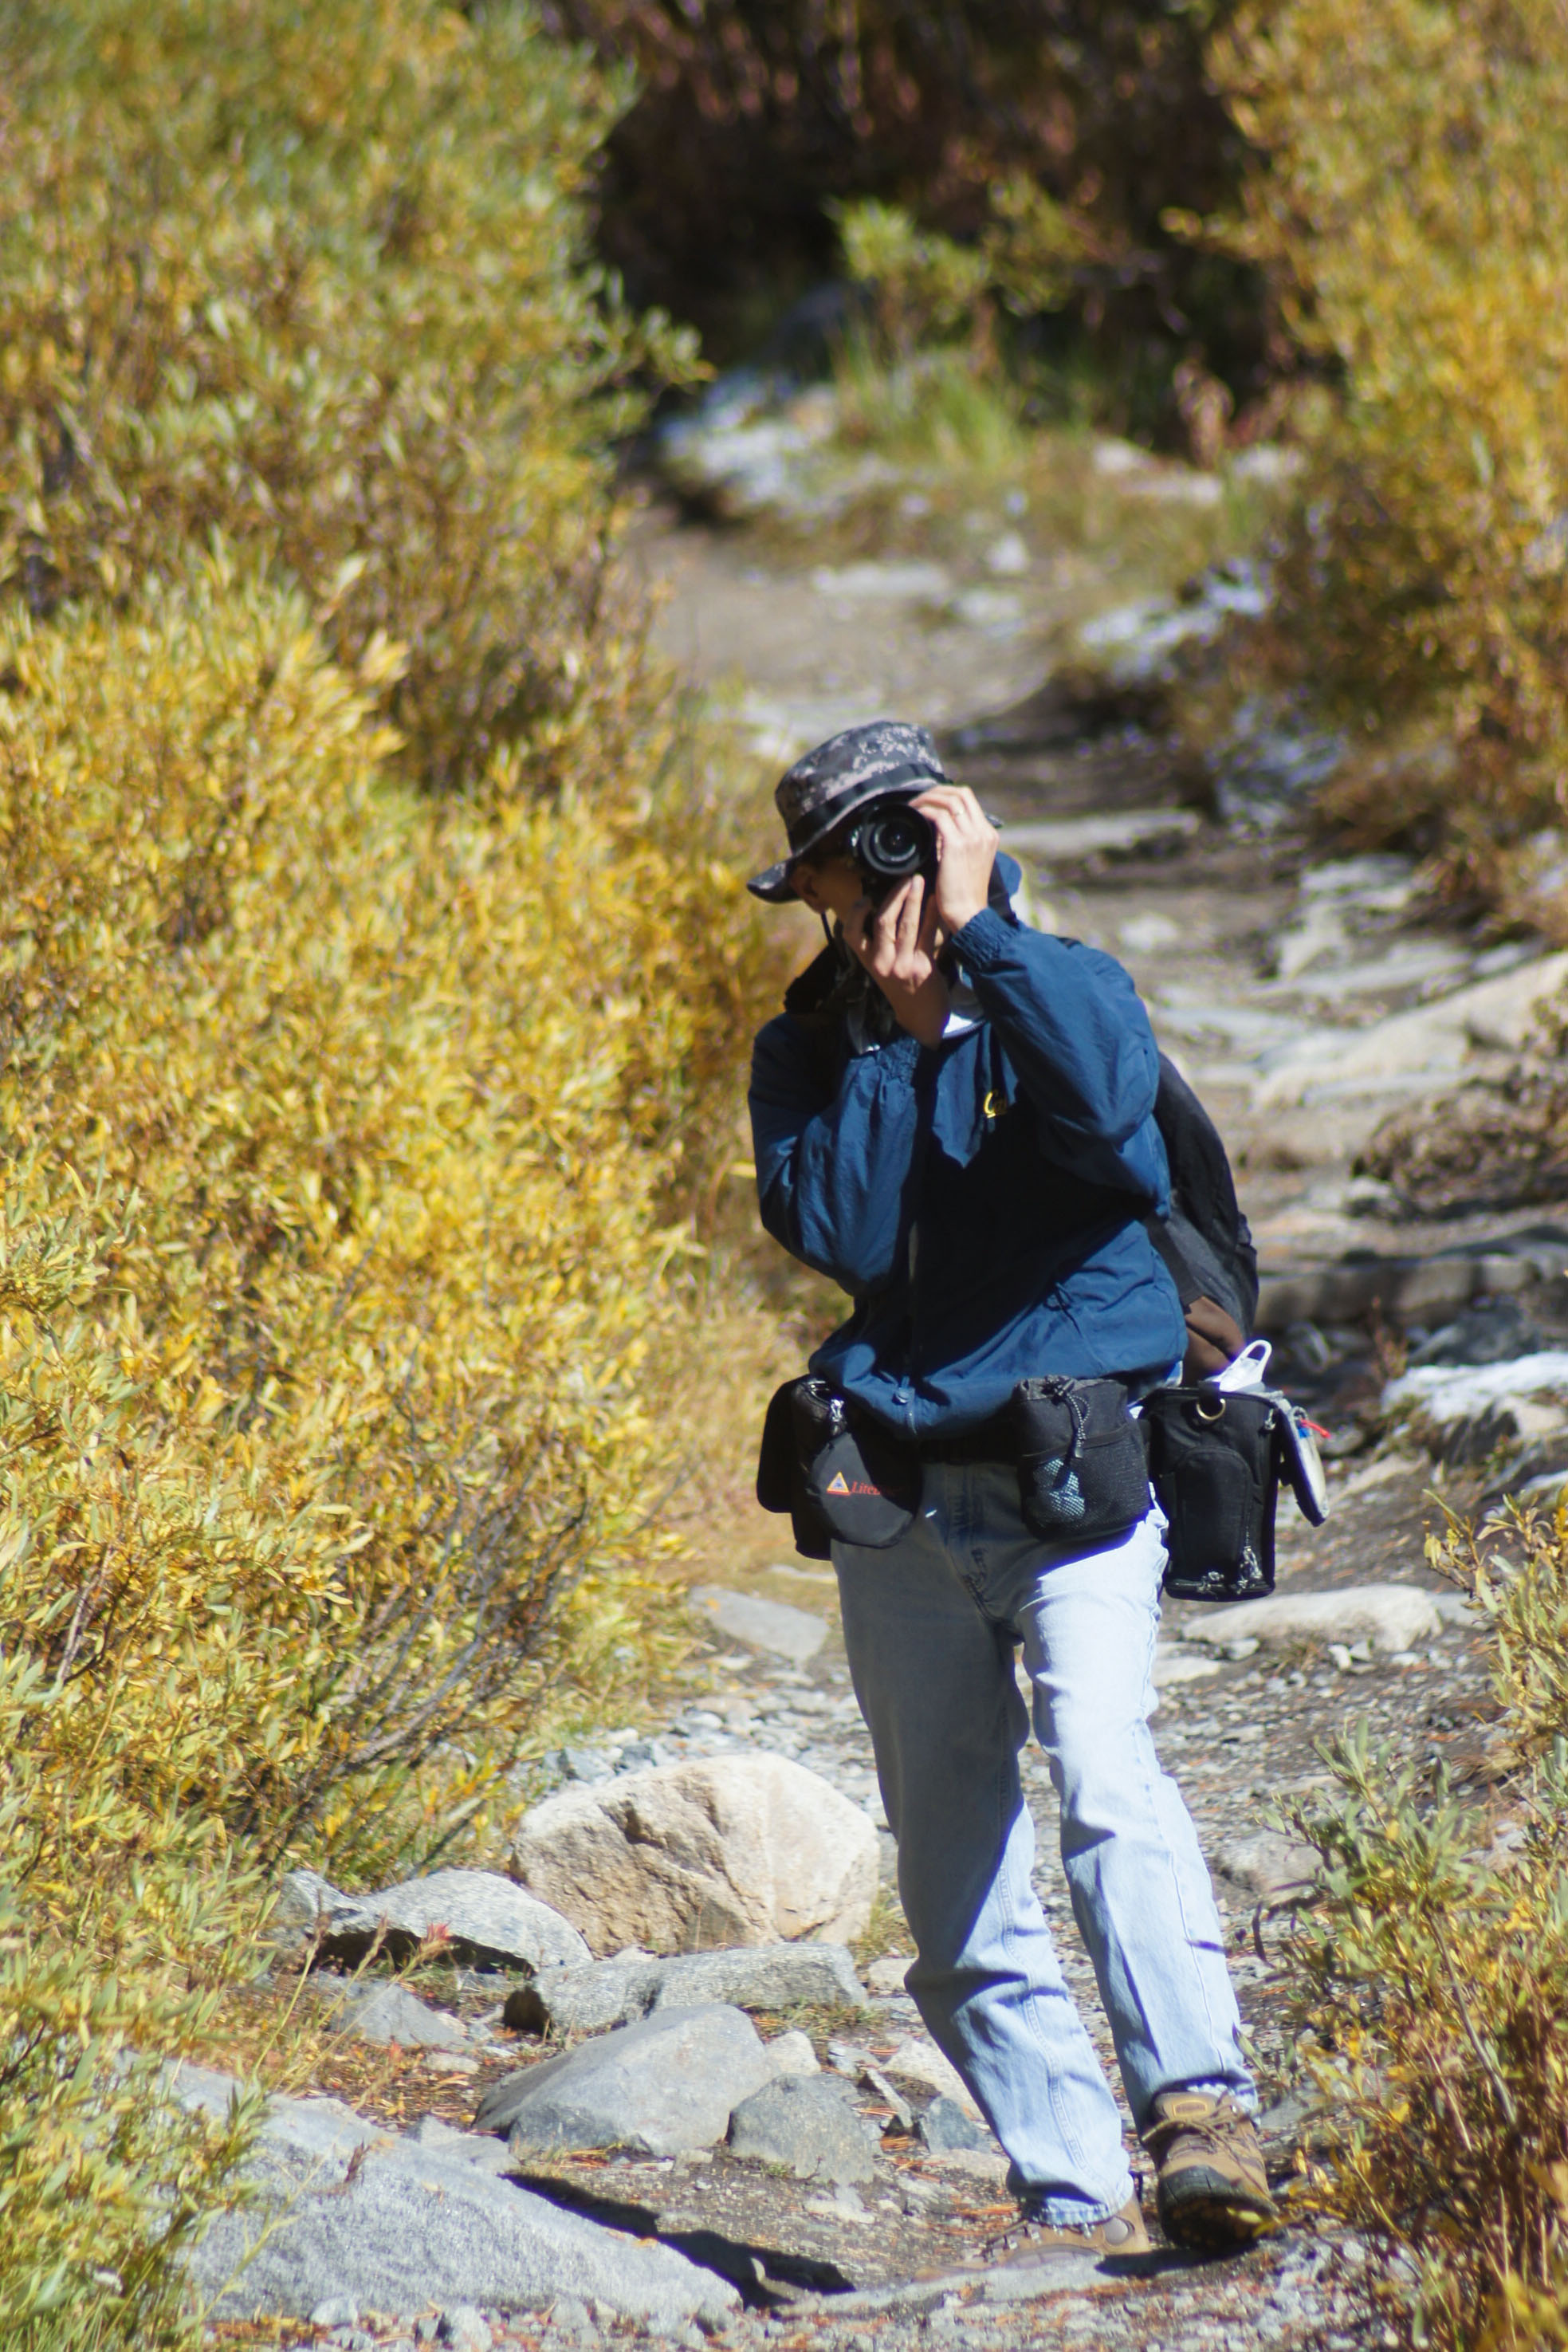 Tony Soria Shot by Tony Soria Rock Creek Trail, Eastern Sierras with Lens Changer 50, Digital Holster 20 and Skin 50